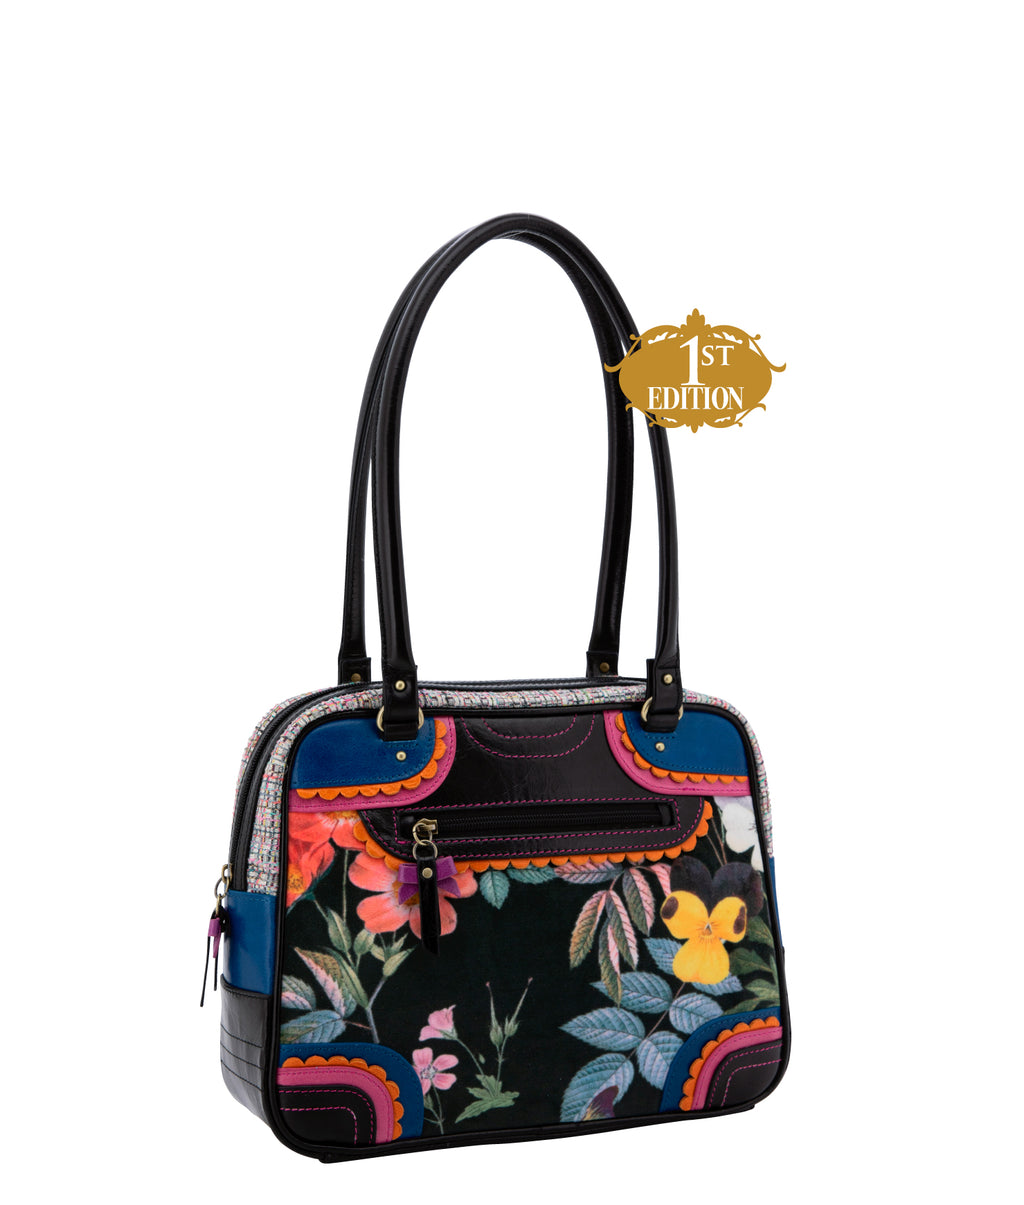 NINA Shoulder Bag - Fiesta Party - 1st Edition